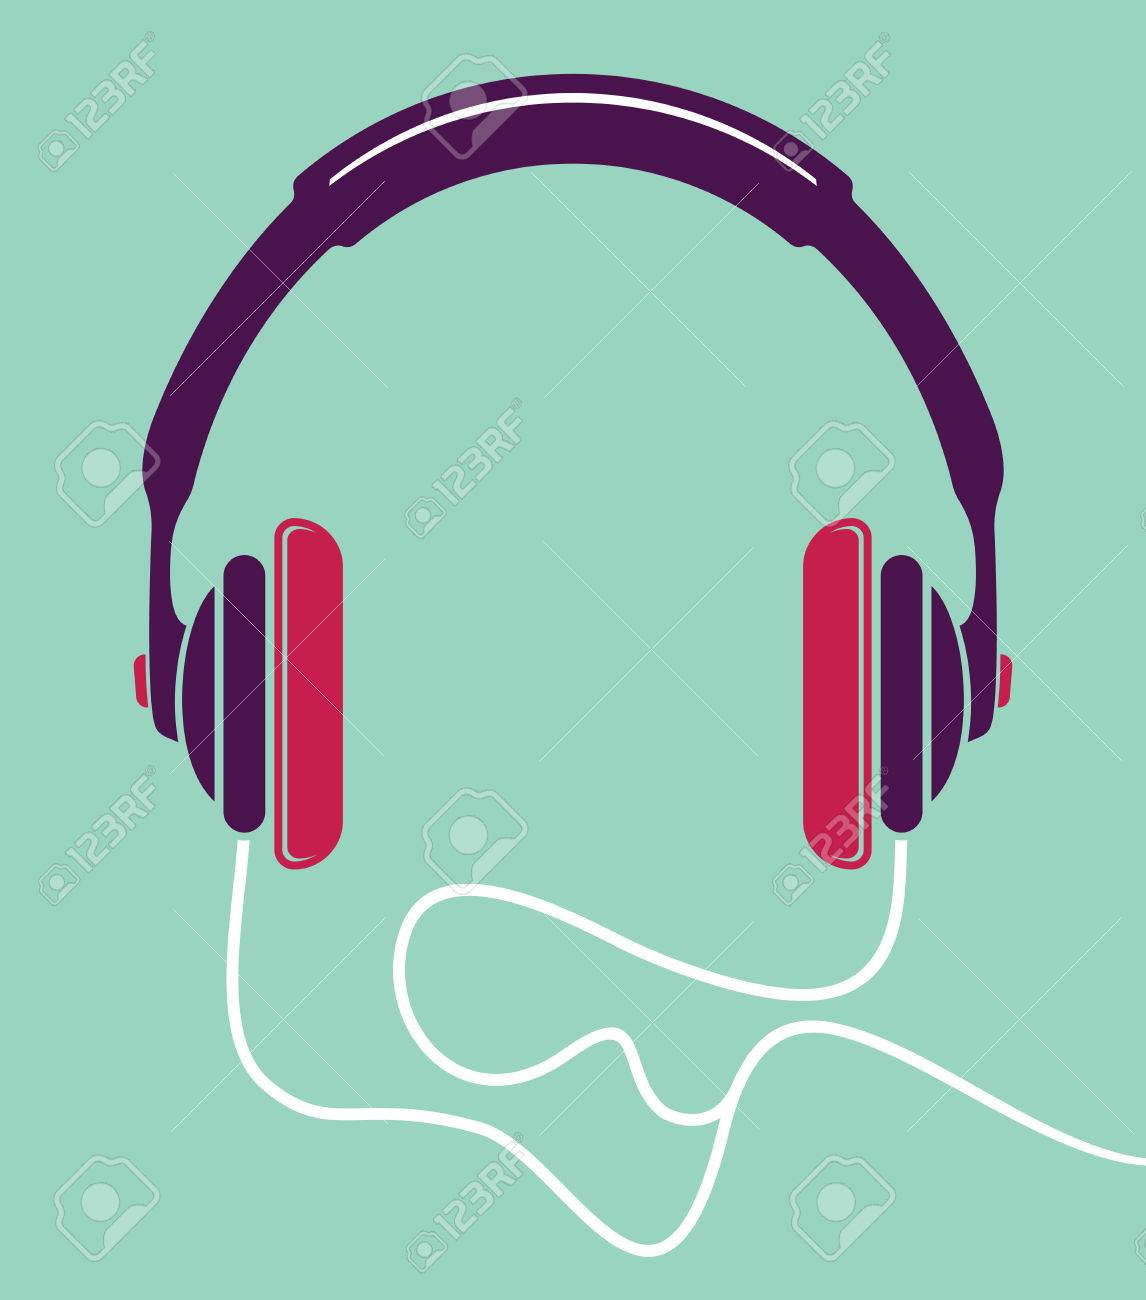 Headphone Poster Royalty Free Cliparts, Vectors, And Stock ...